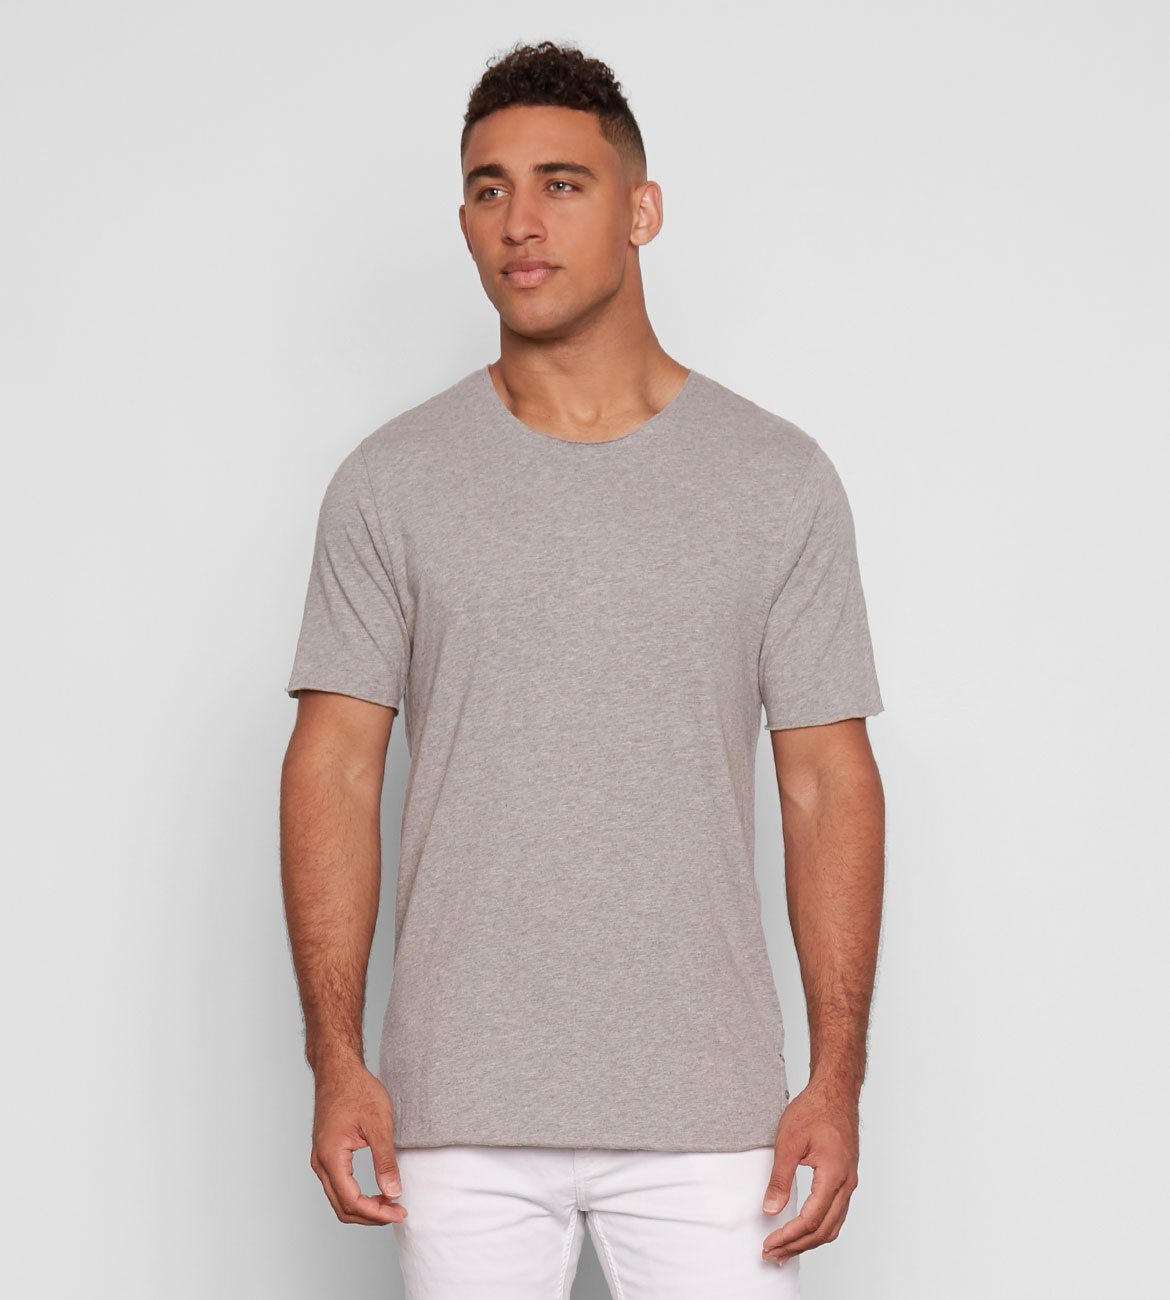 Miles Tee Mens Tops Threads 4 Thought S Marled Grey